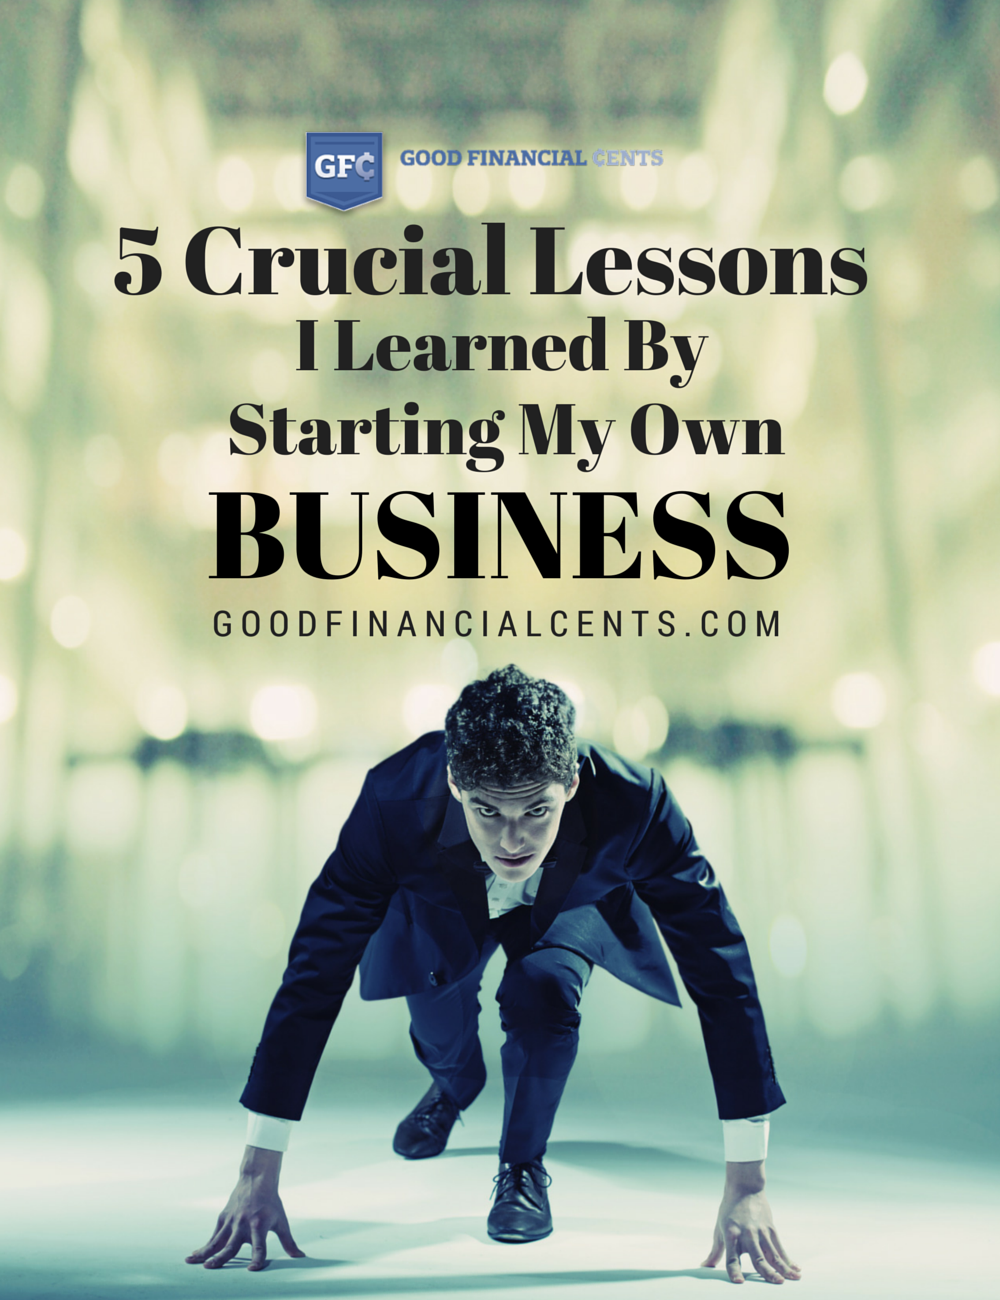 5 Crucial Lessons I Learned by Starting My Own Business ...